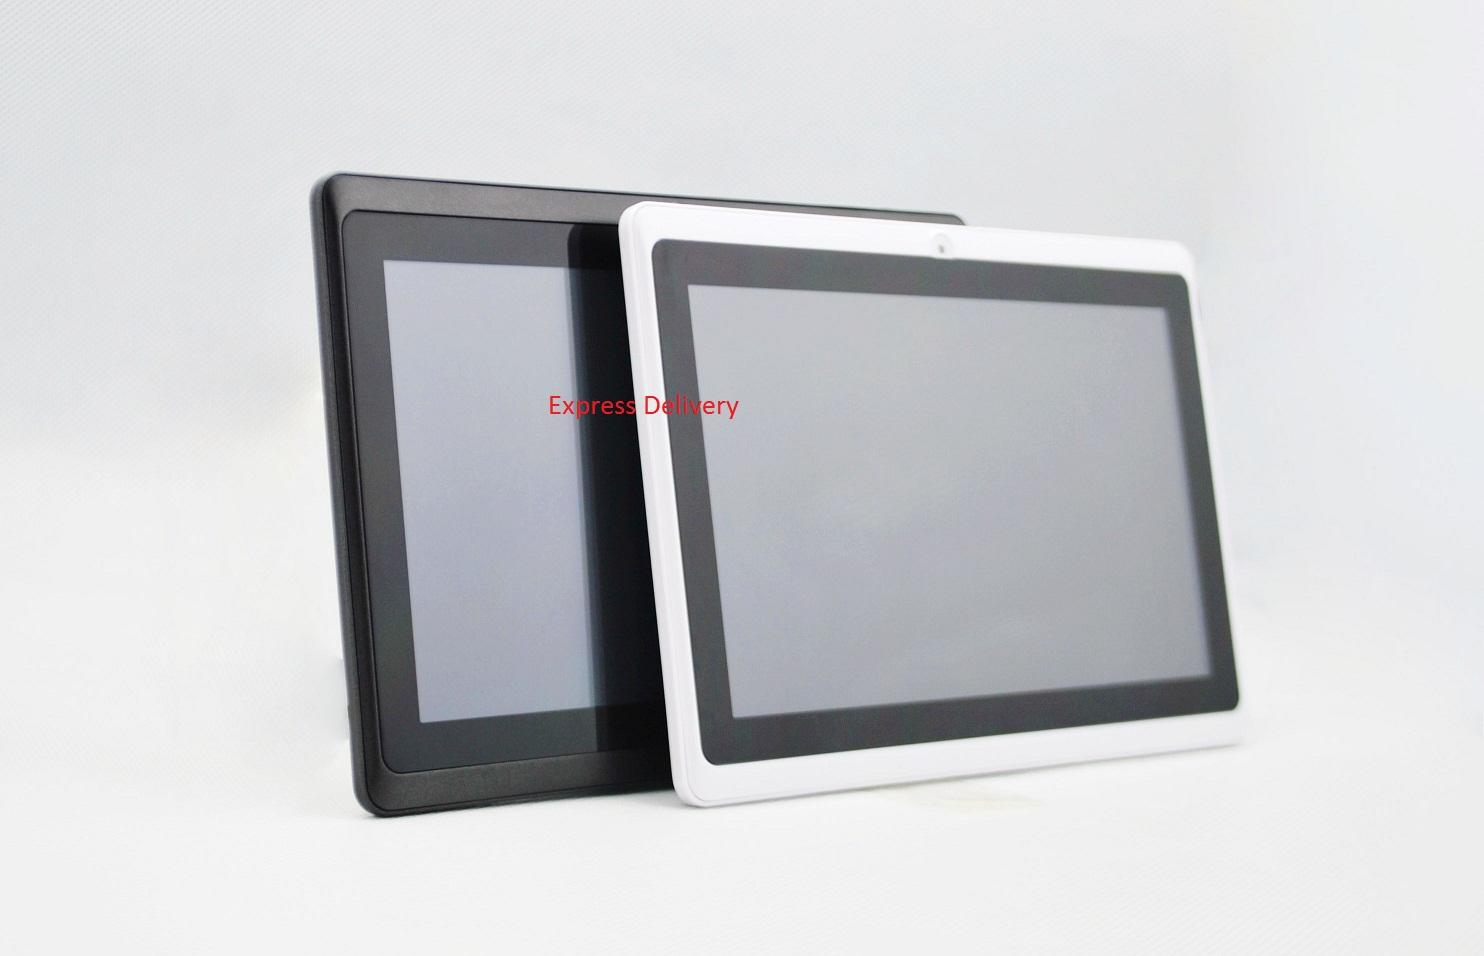 android tablet pc ipad samsung tab capacitive ips screen advance ainol